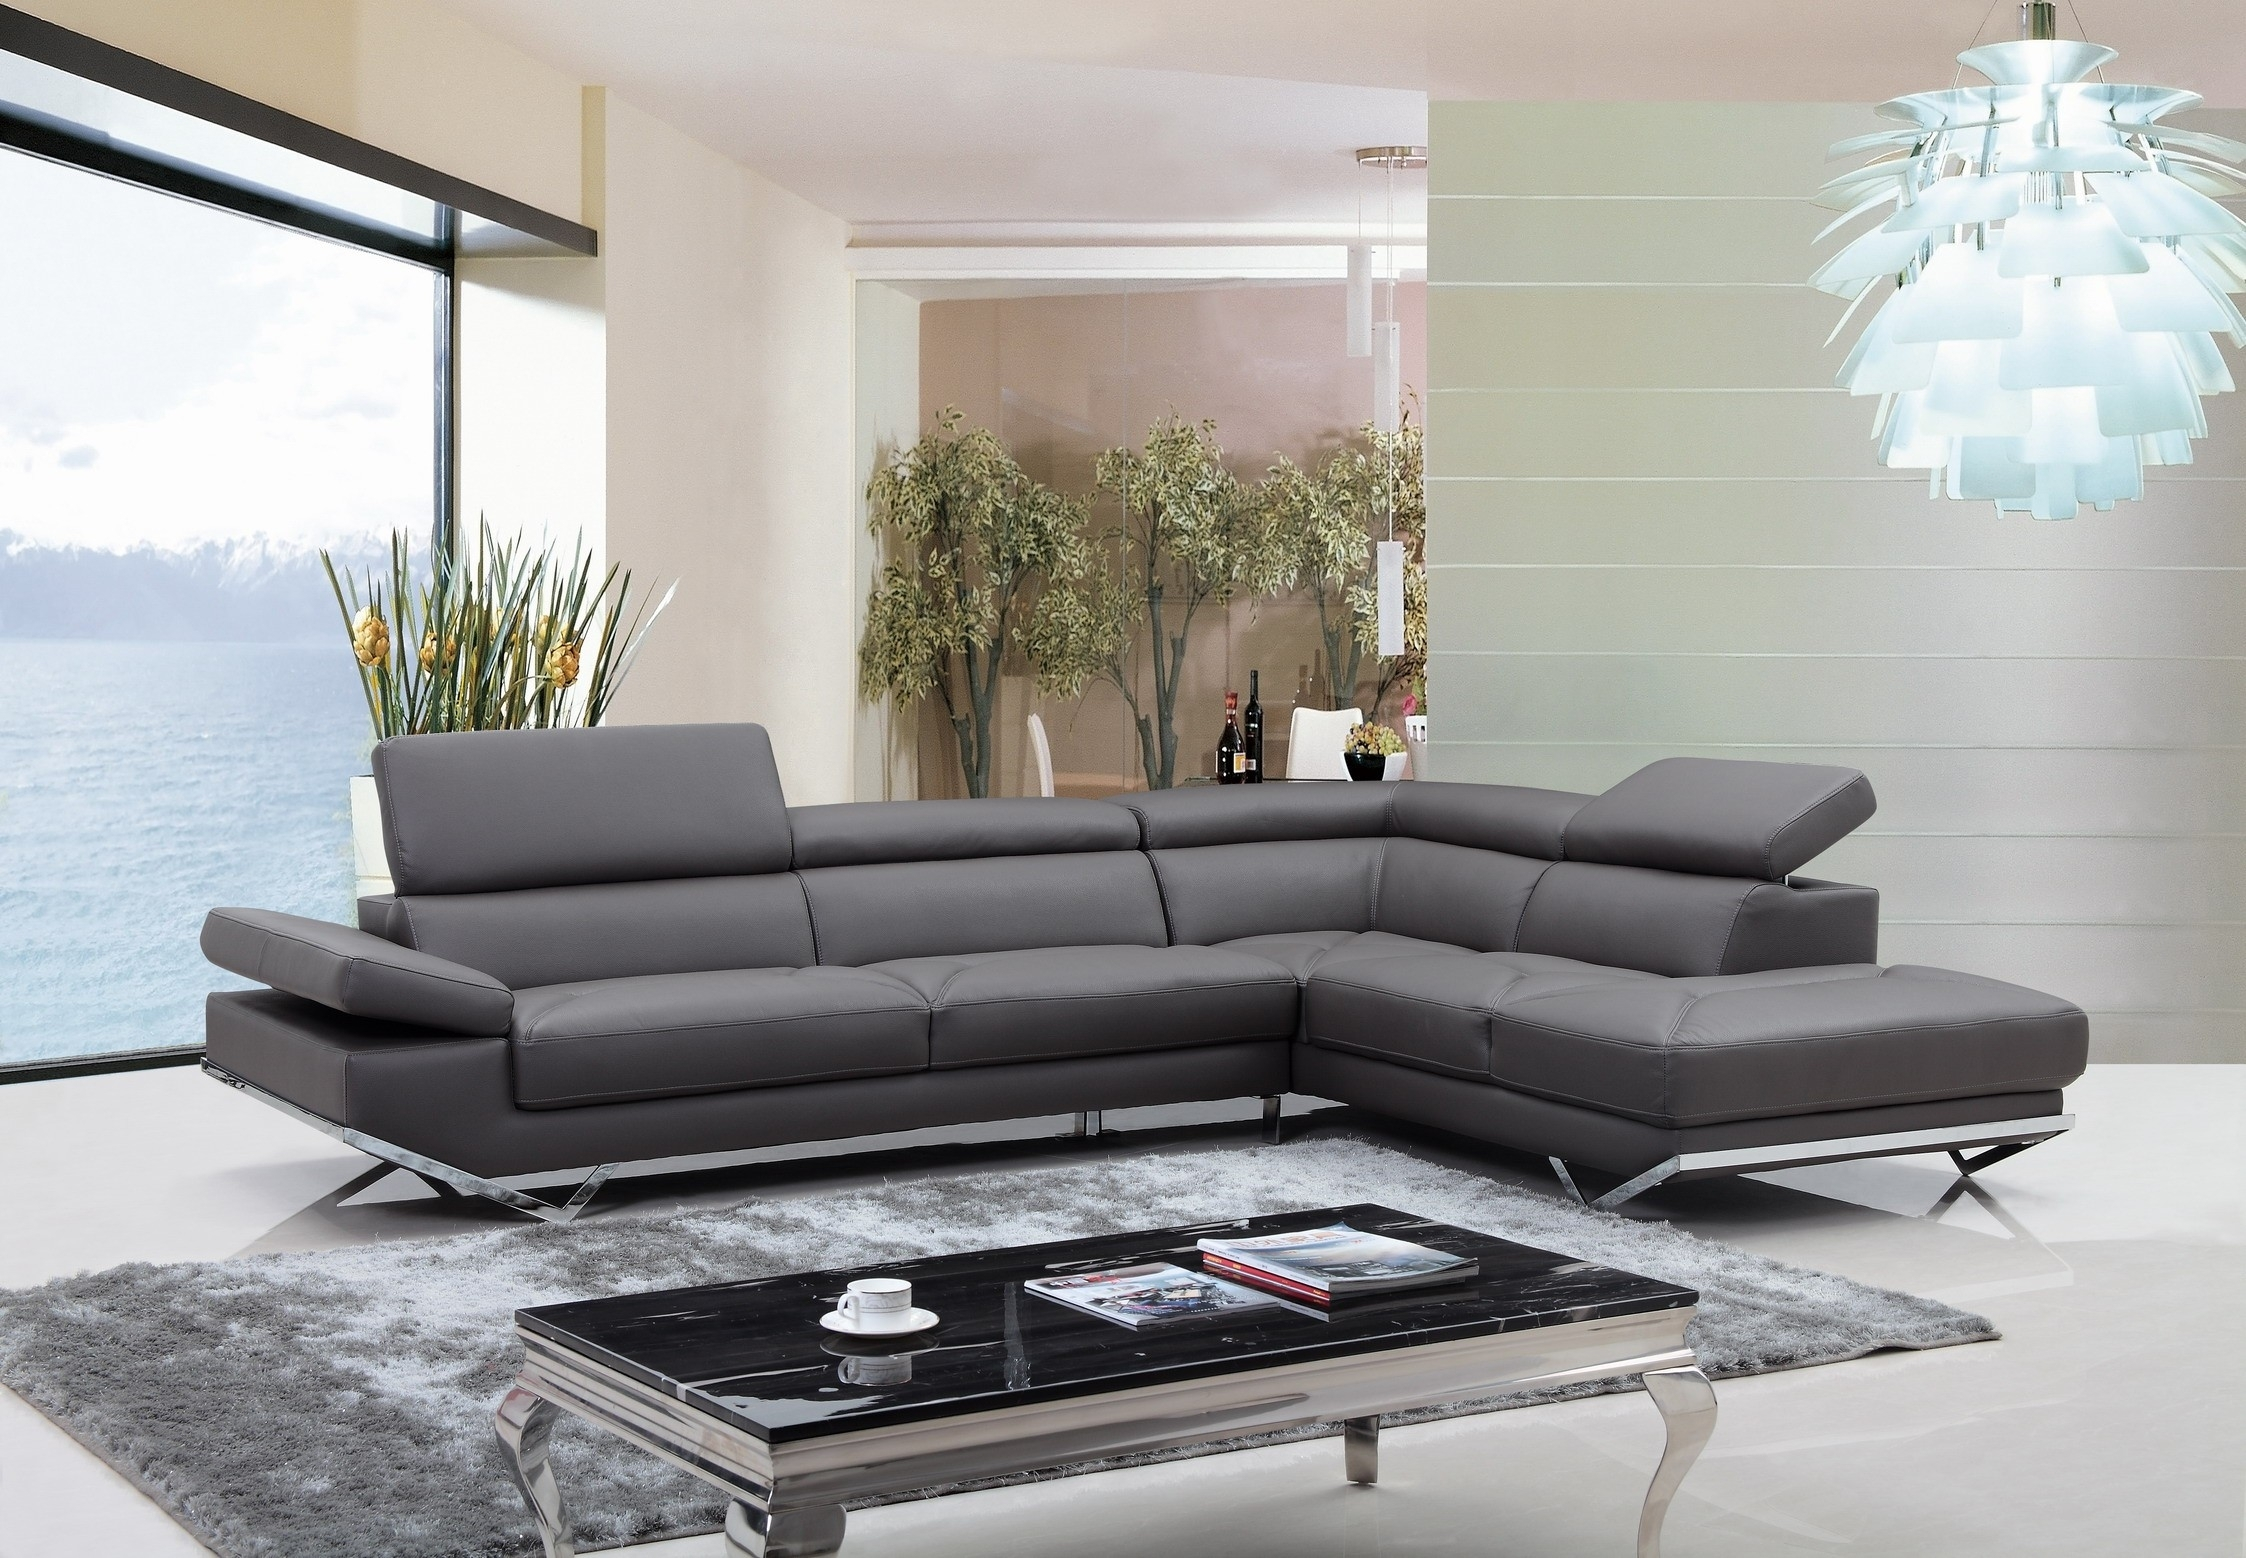 Contemporary Leather Sofas Italian Sofa Uk Modern Furniture High Inside High Point Nc Sectional Sofas (View 7 of 10)